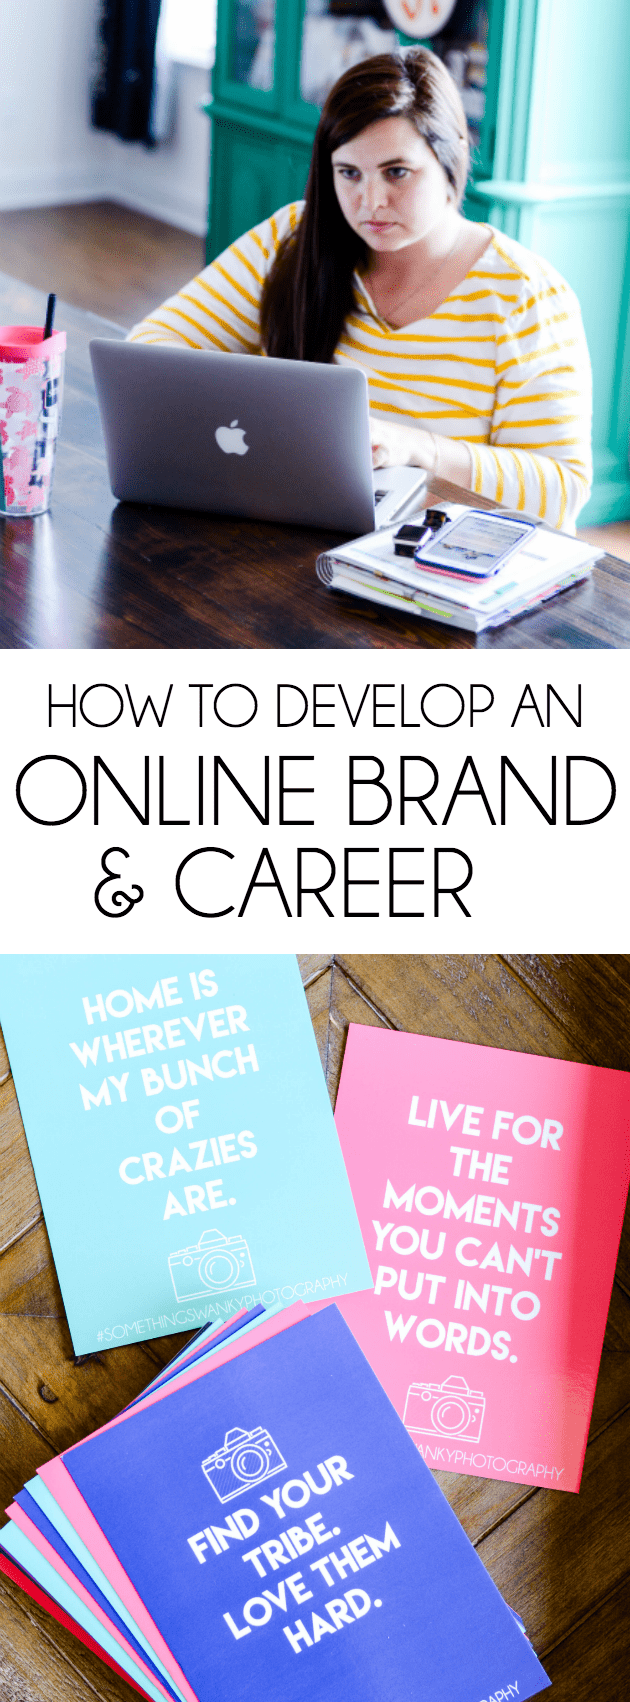 Have you ever wondered how to turn your hobbies and passion projects into a career online? Here's how I did it!